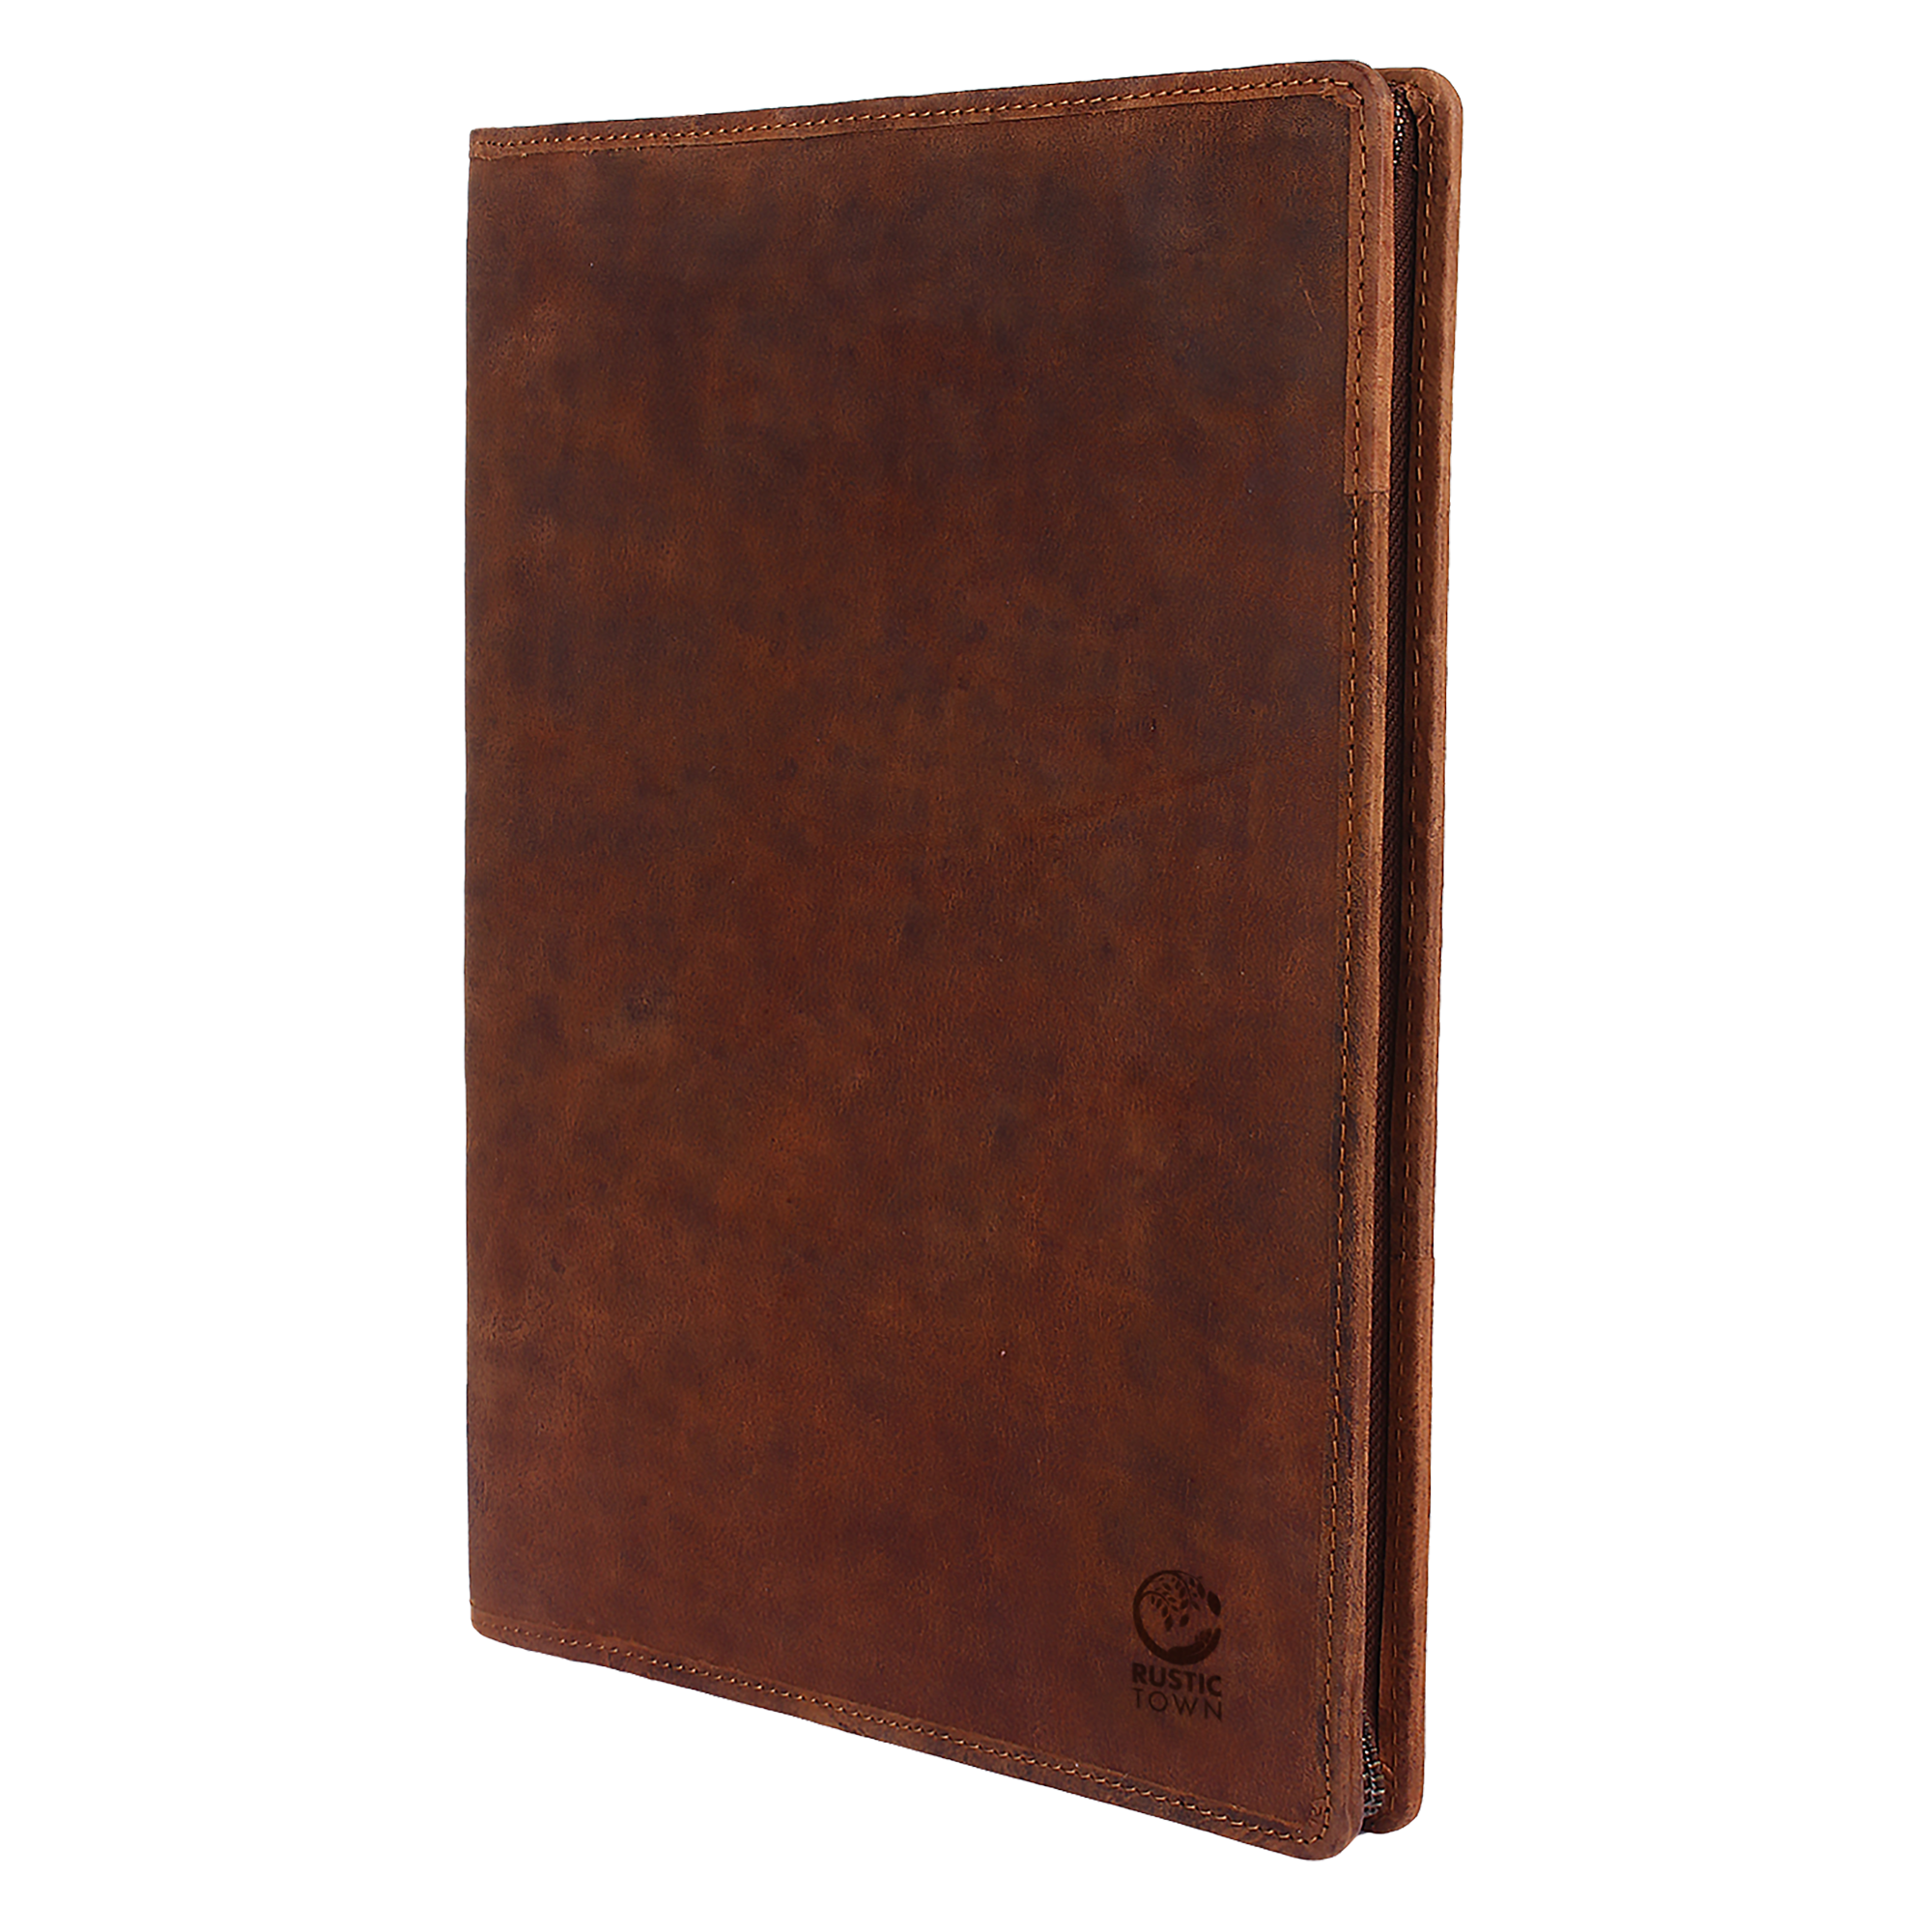 Monarch Business Leather Portfolio Professional Organizer (Hunter)